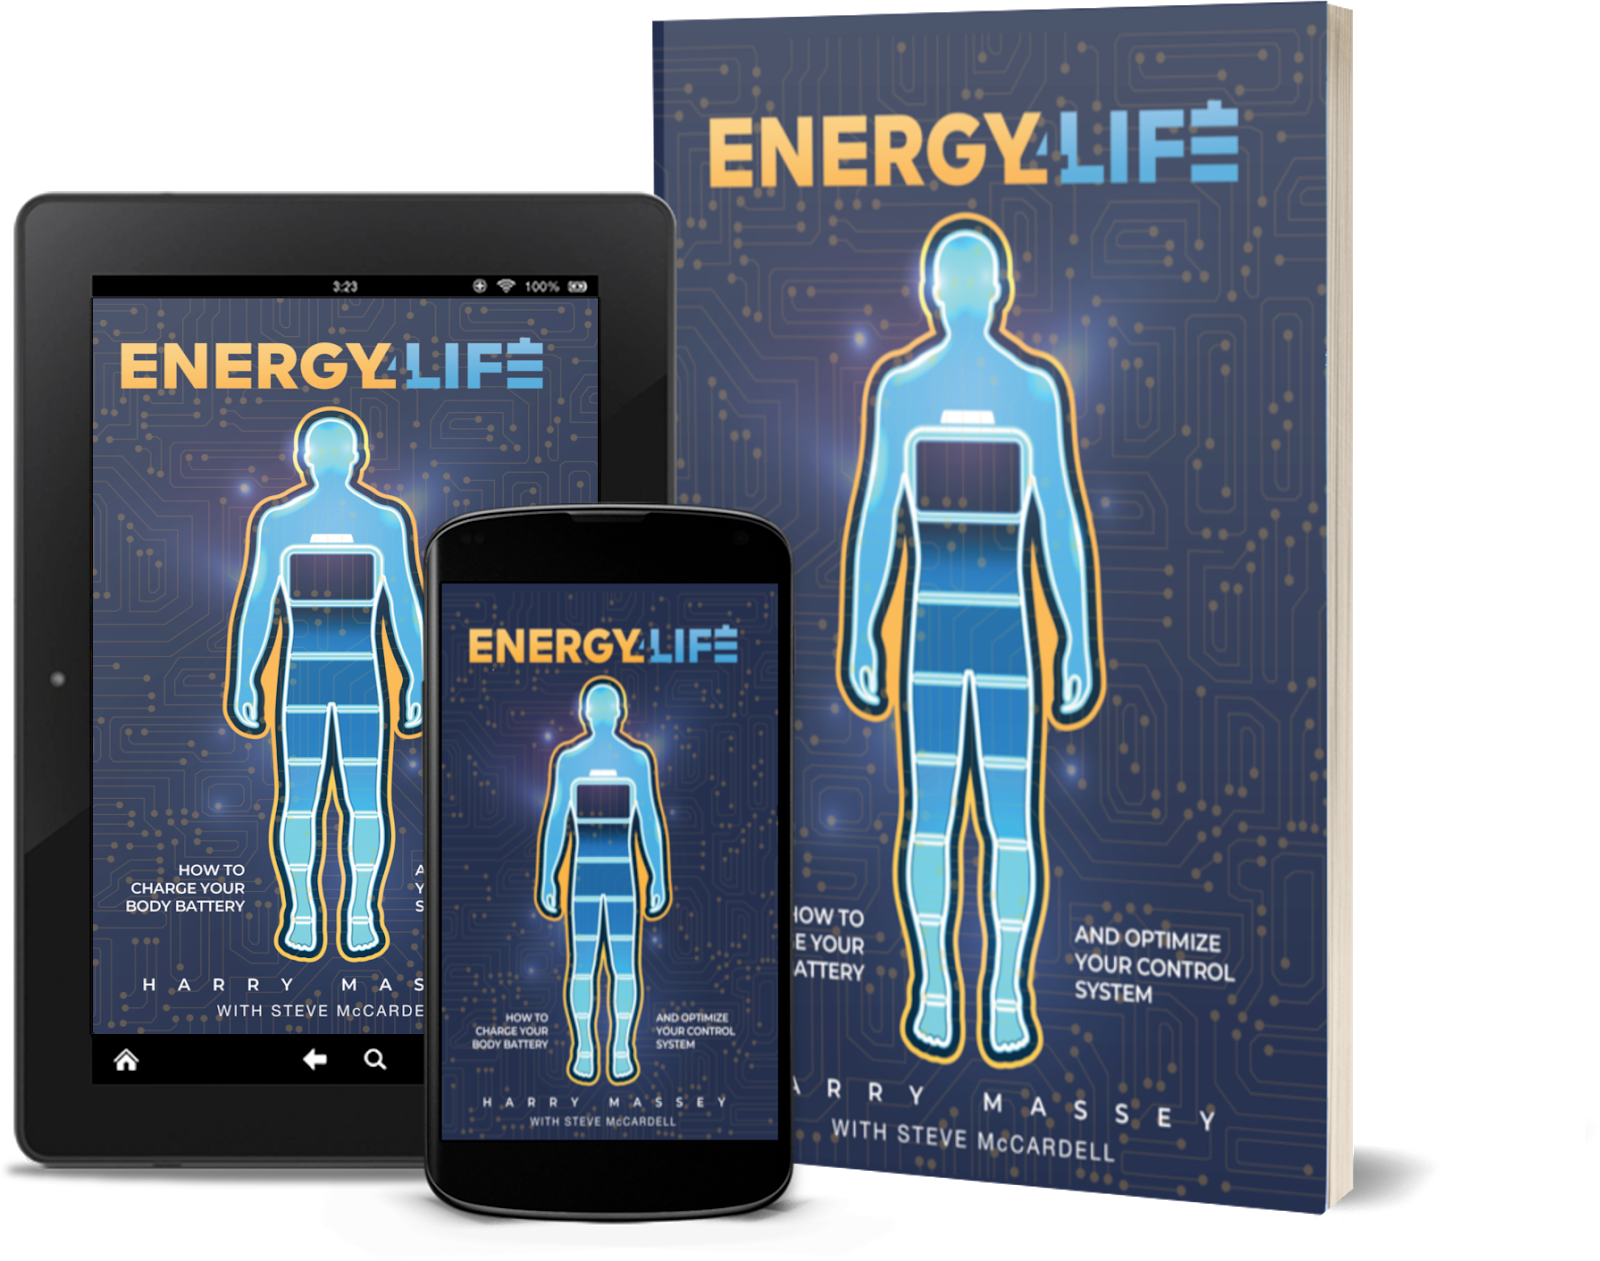 Energy 4 Life Free Book Details